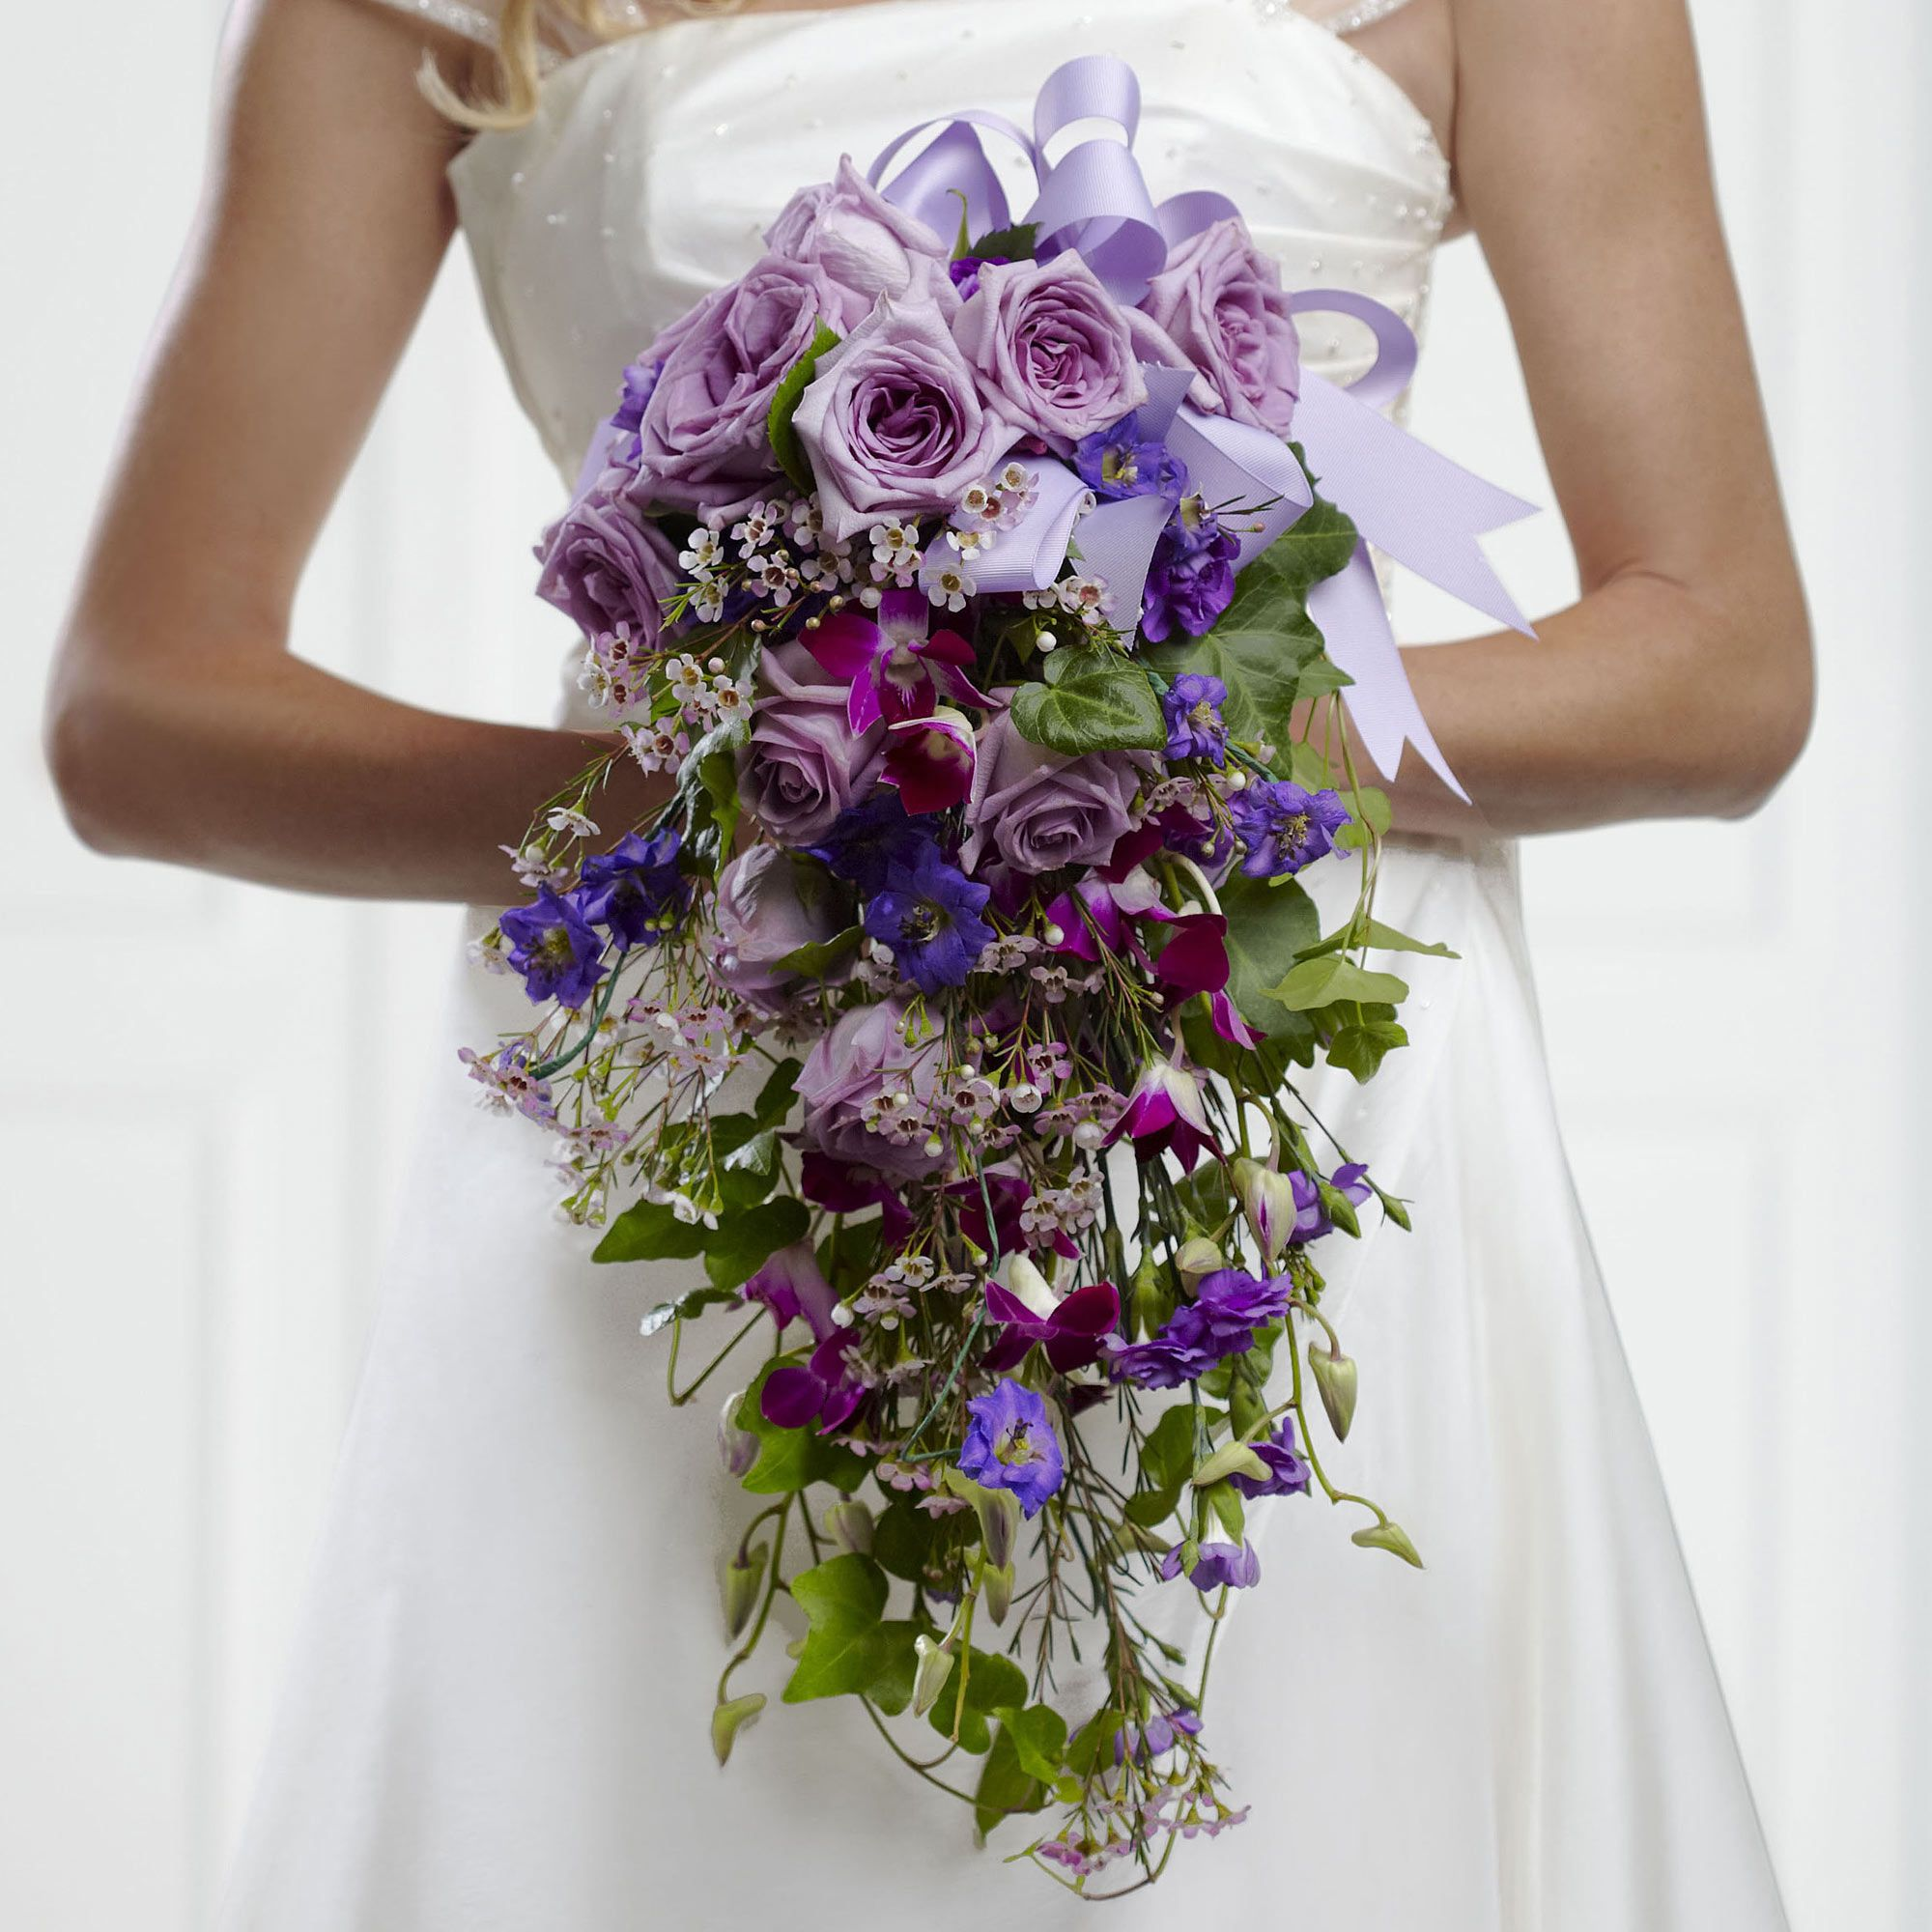 Purple And Pink Wedding Flowers: This Blissful Purple Wedding Bouquet Has Lavender Roses At